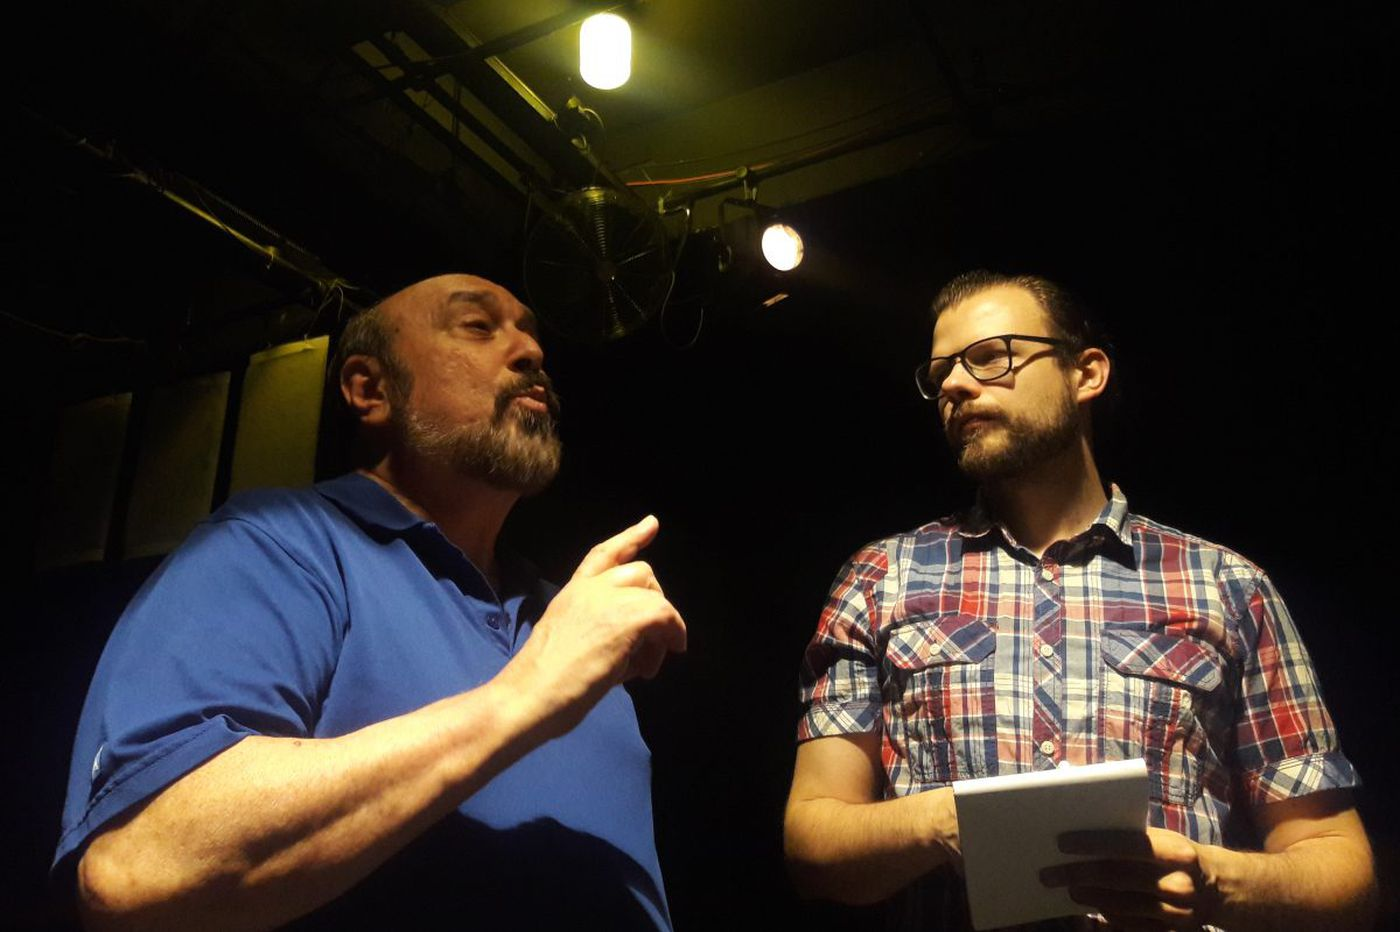 How to start a theater in the Czech Republic: The story of Philly's Gene Terruso